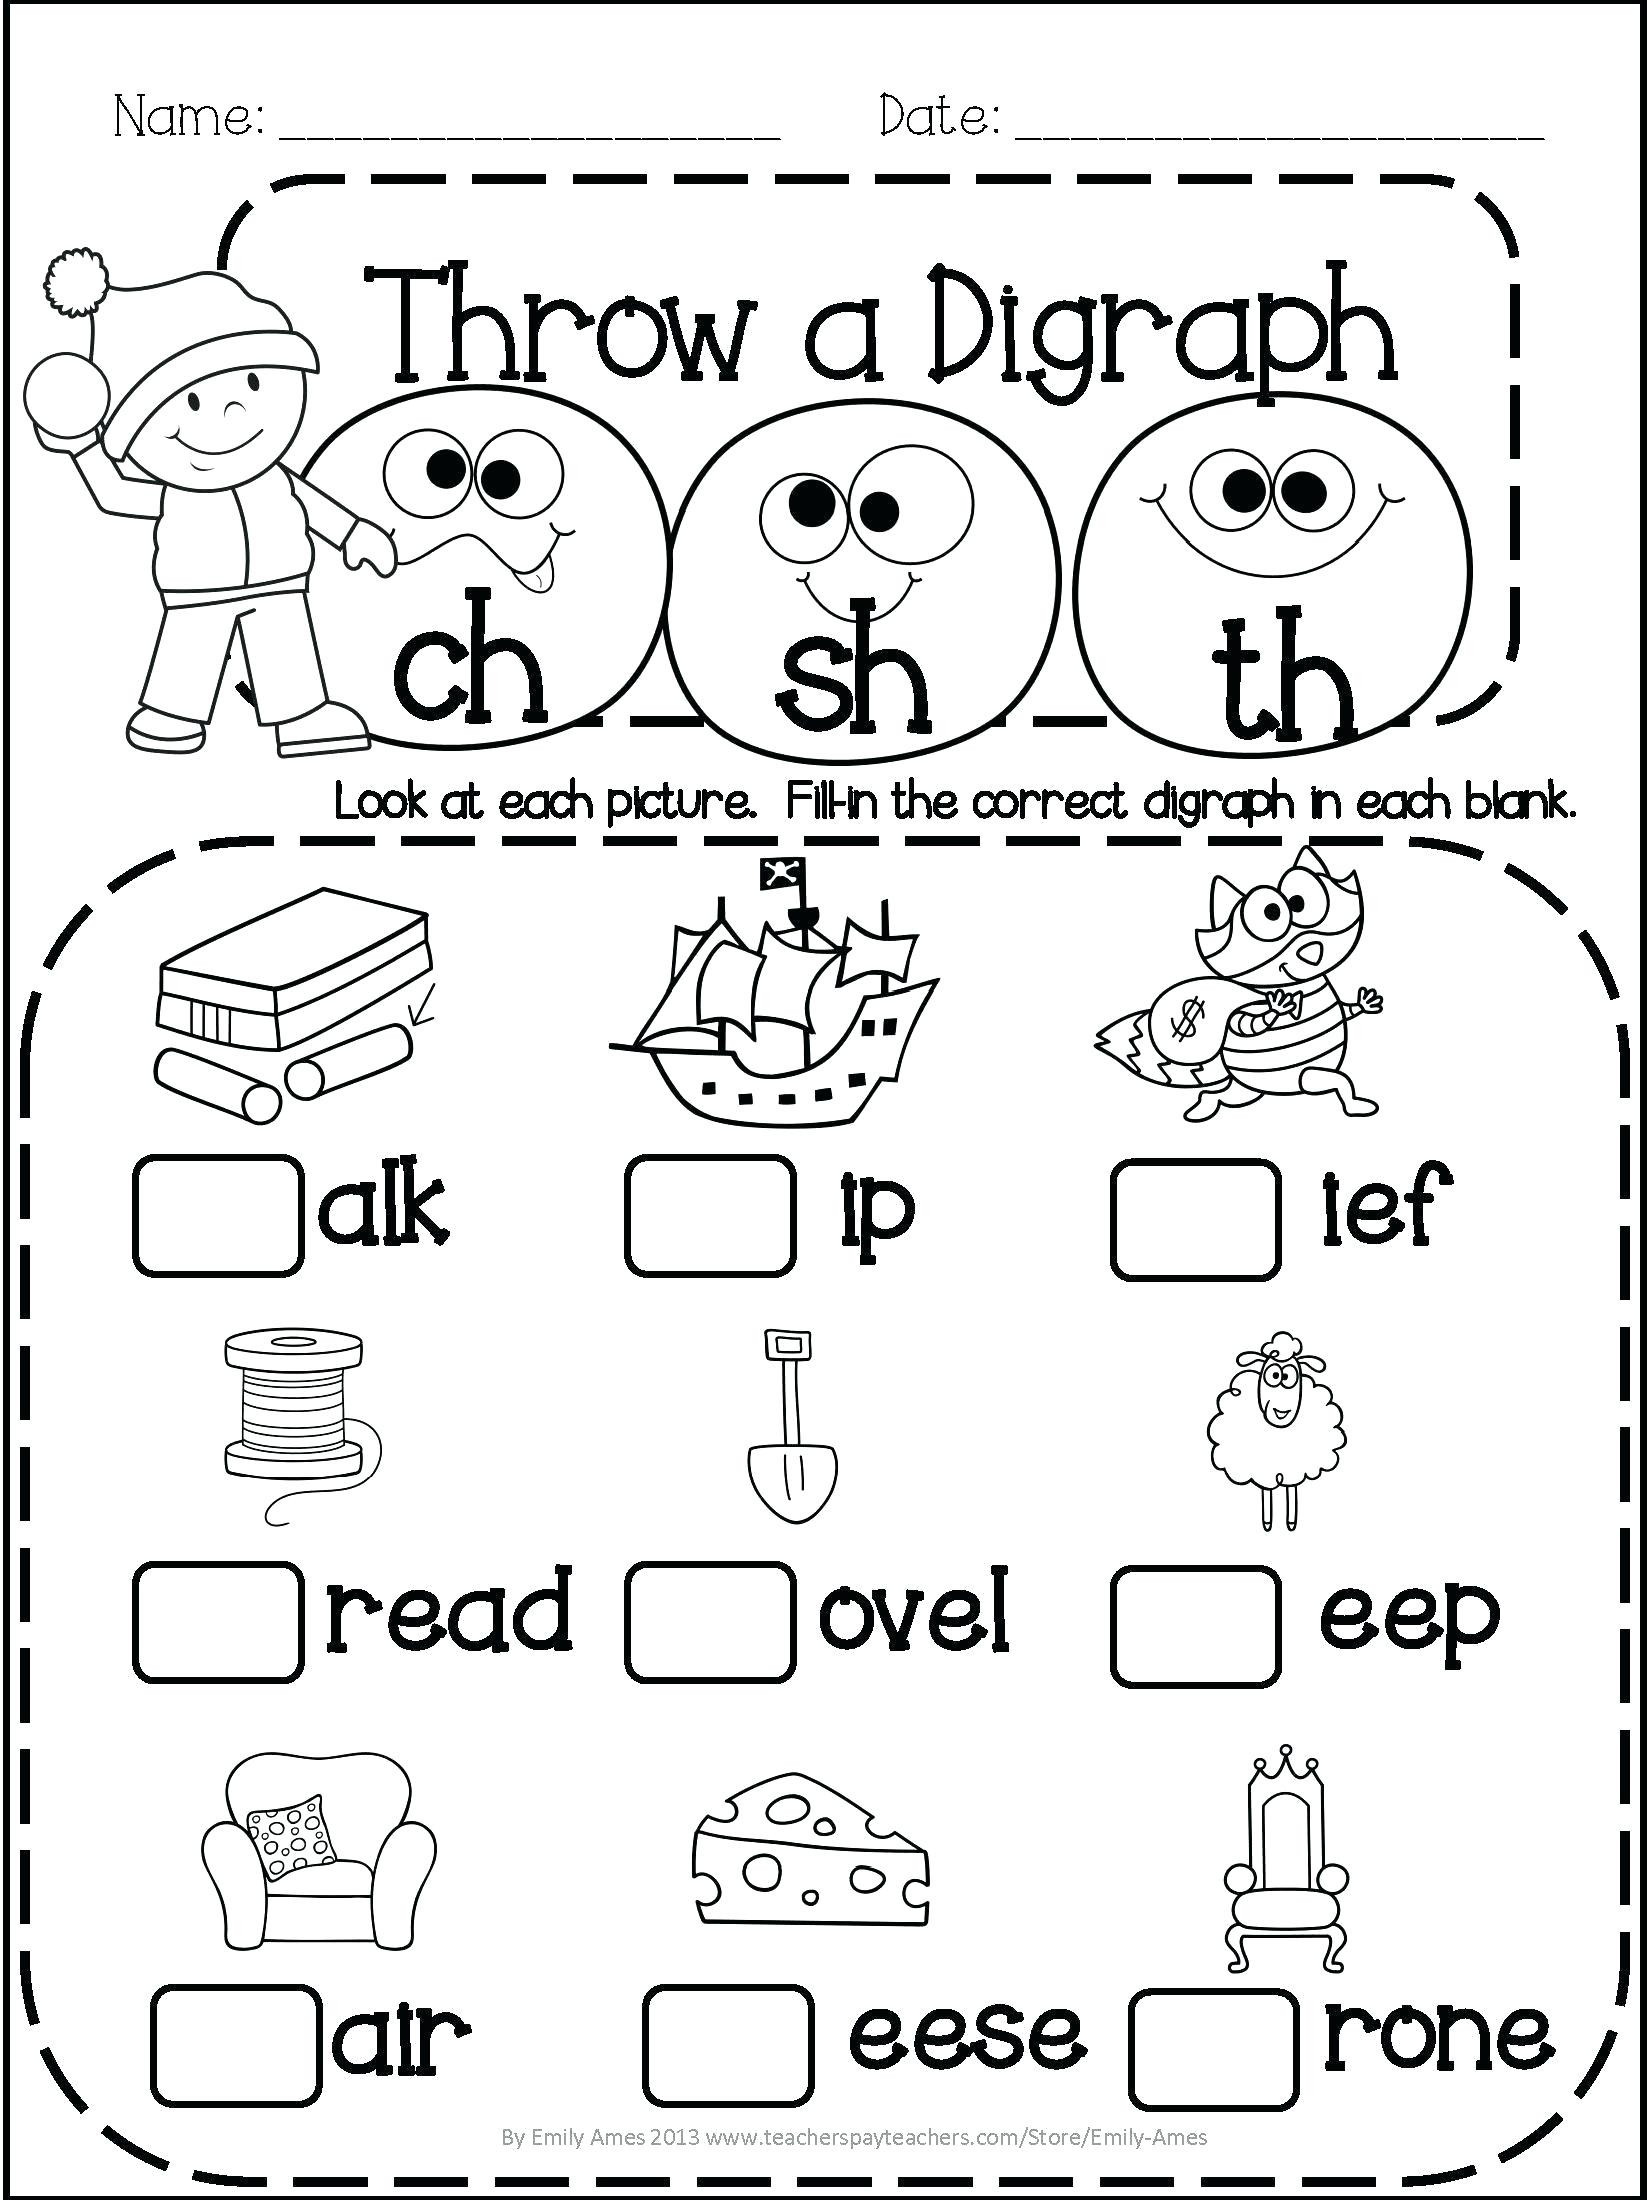 Free First Grade Reading Worksheets Worksheet Ideas 1st Grade Reading Printables Get Crafty with